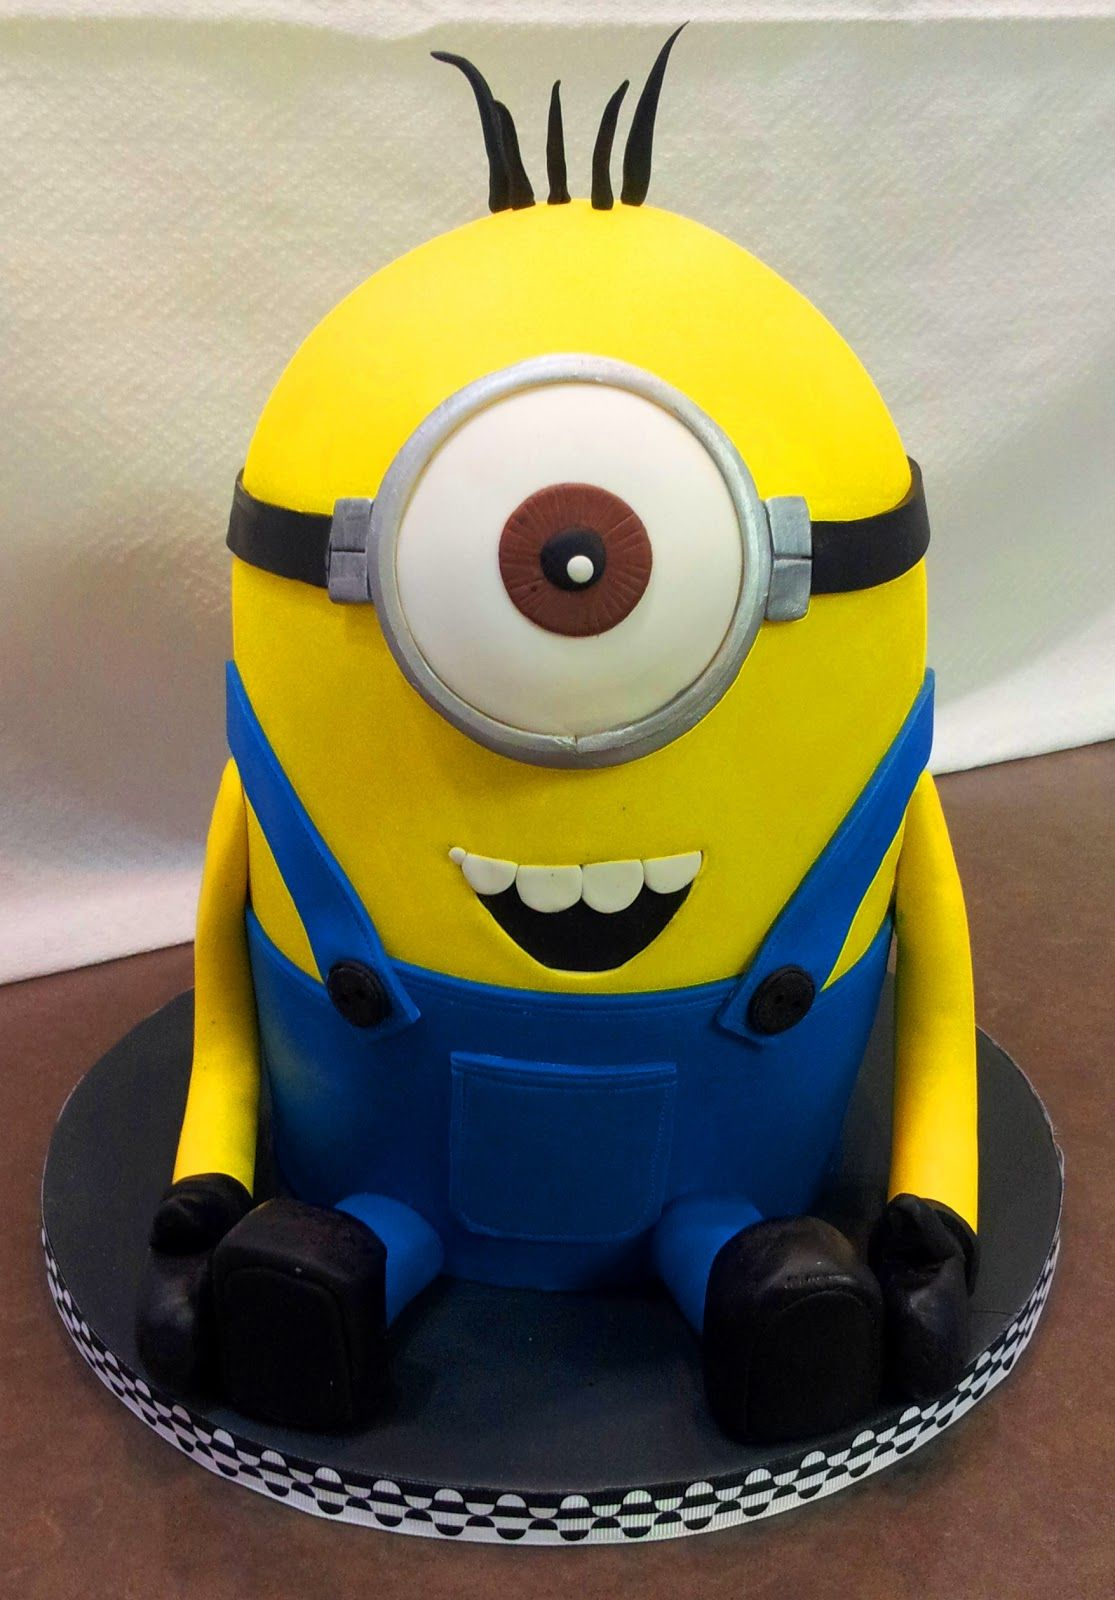 minion cake - Google Search  Cake ideas  Pinterest  Minion cakes ...